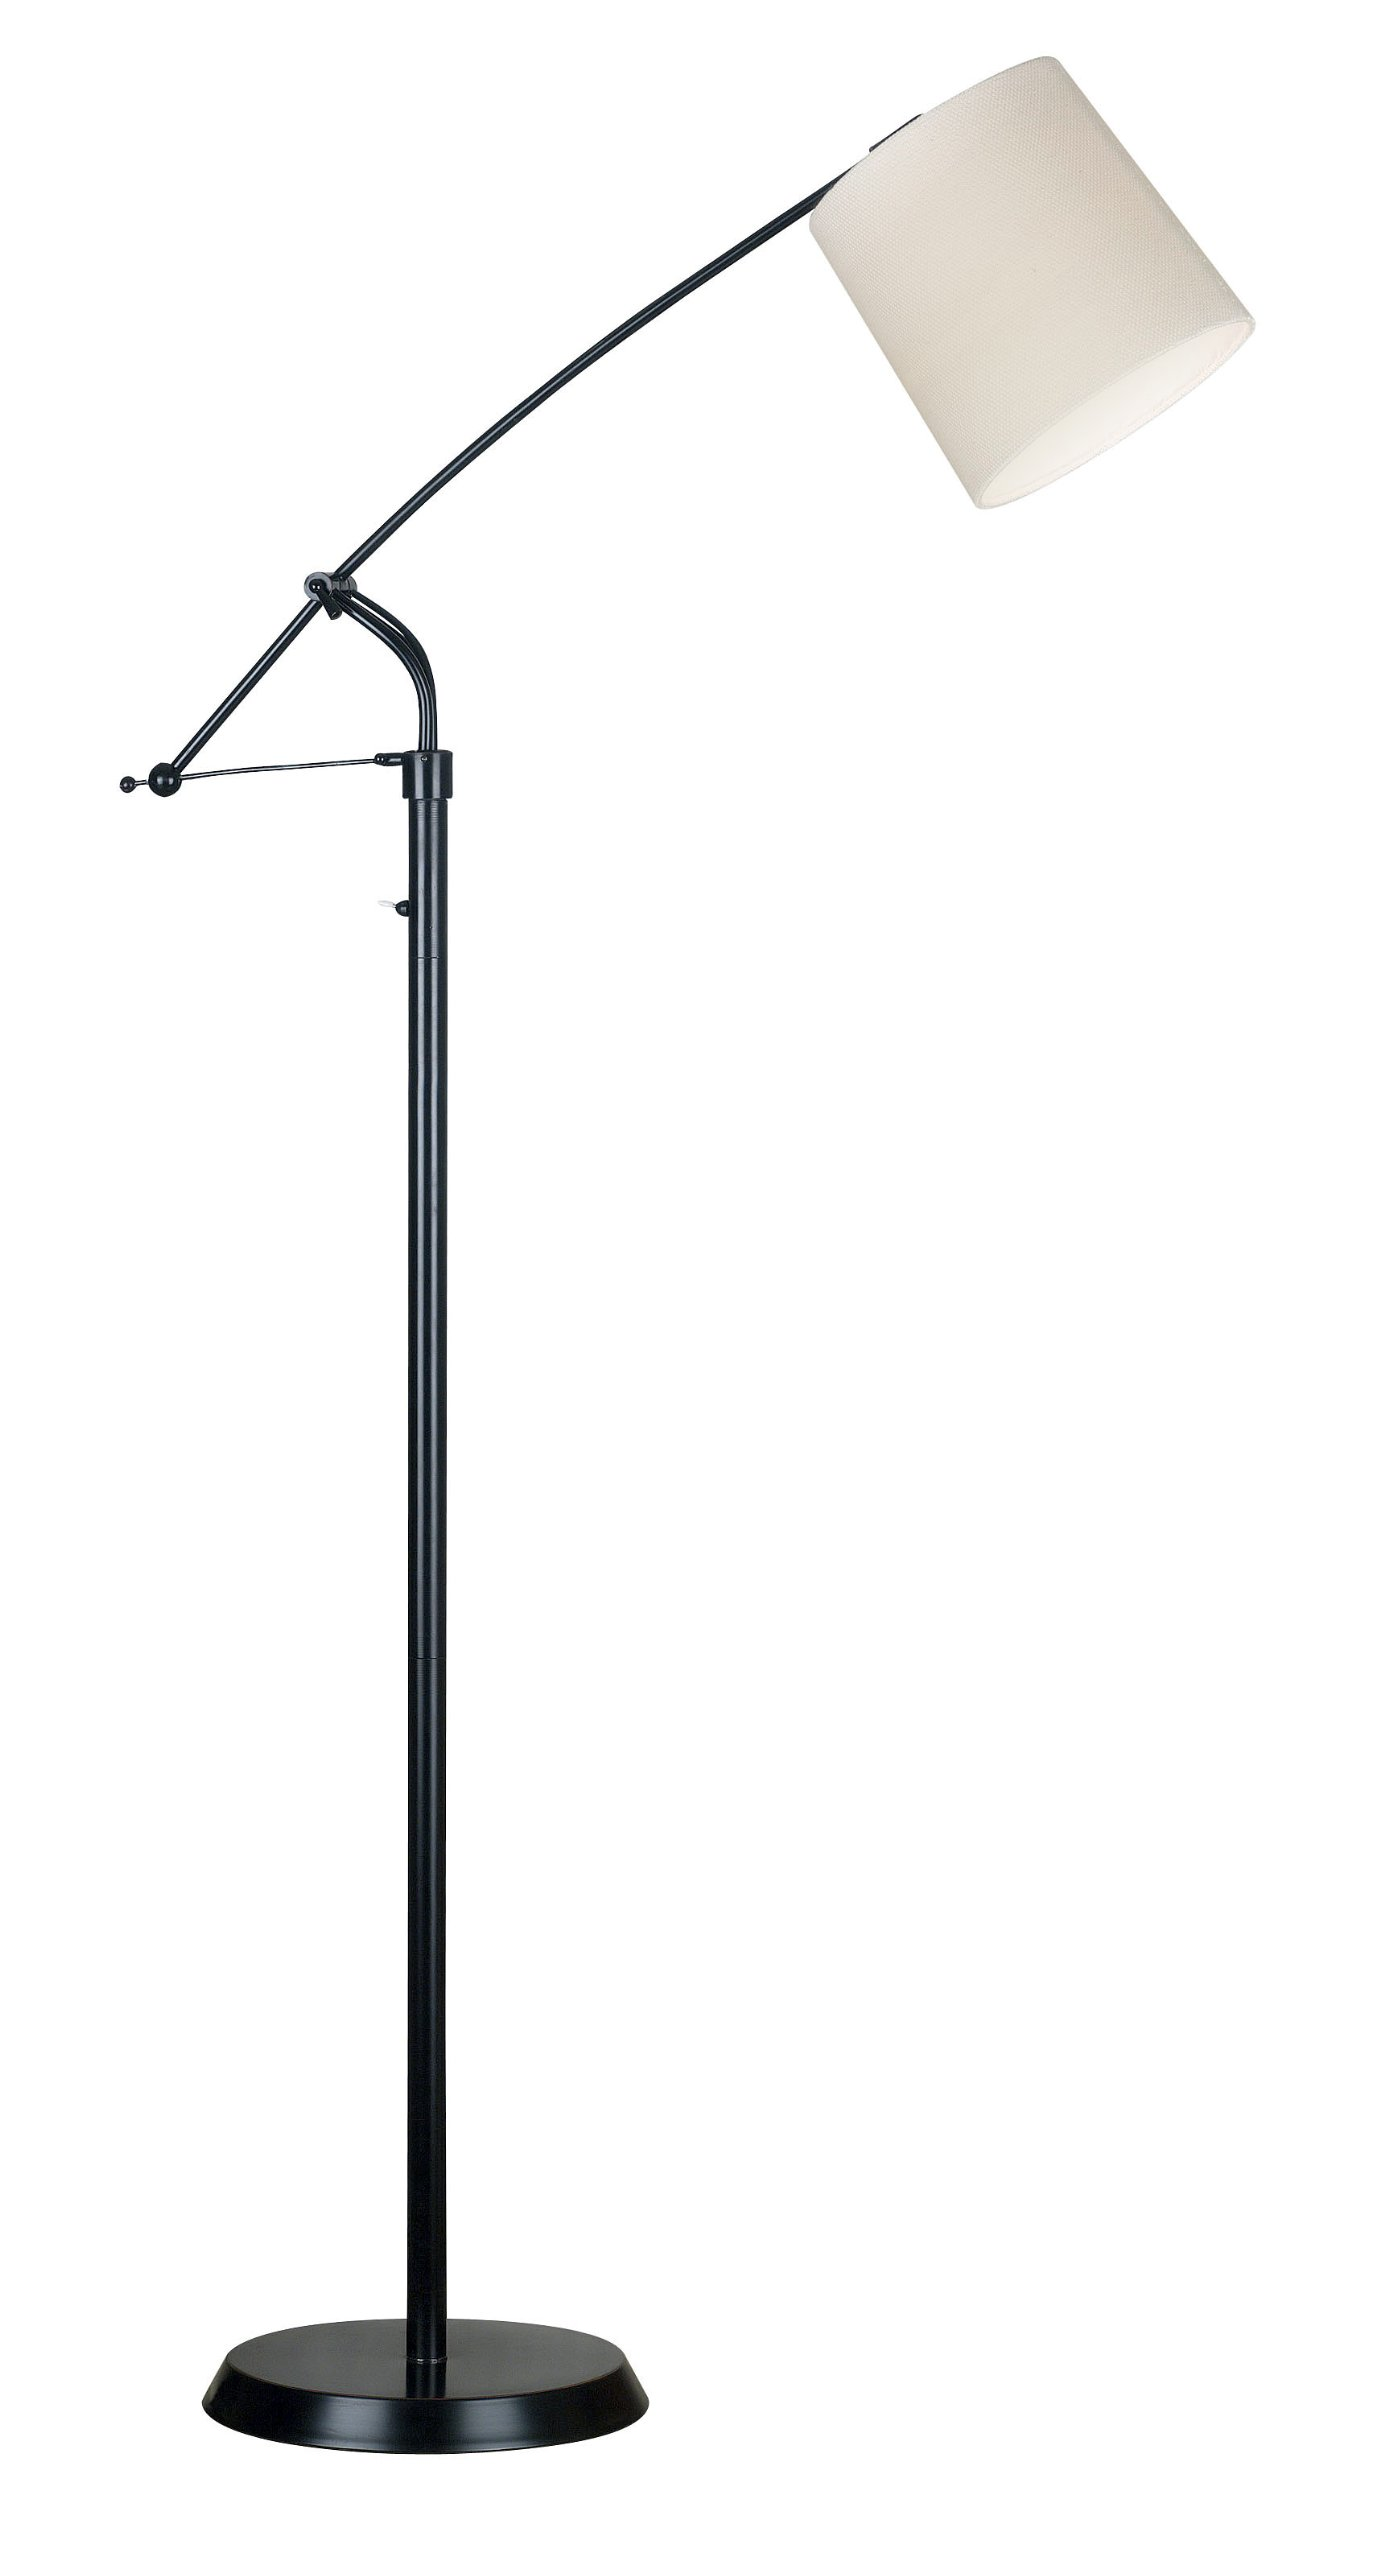 Kenroy Home 20812ORB Reeler Adjustable Floor Lamp, Oil Rubbed Bronze